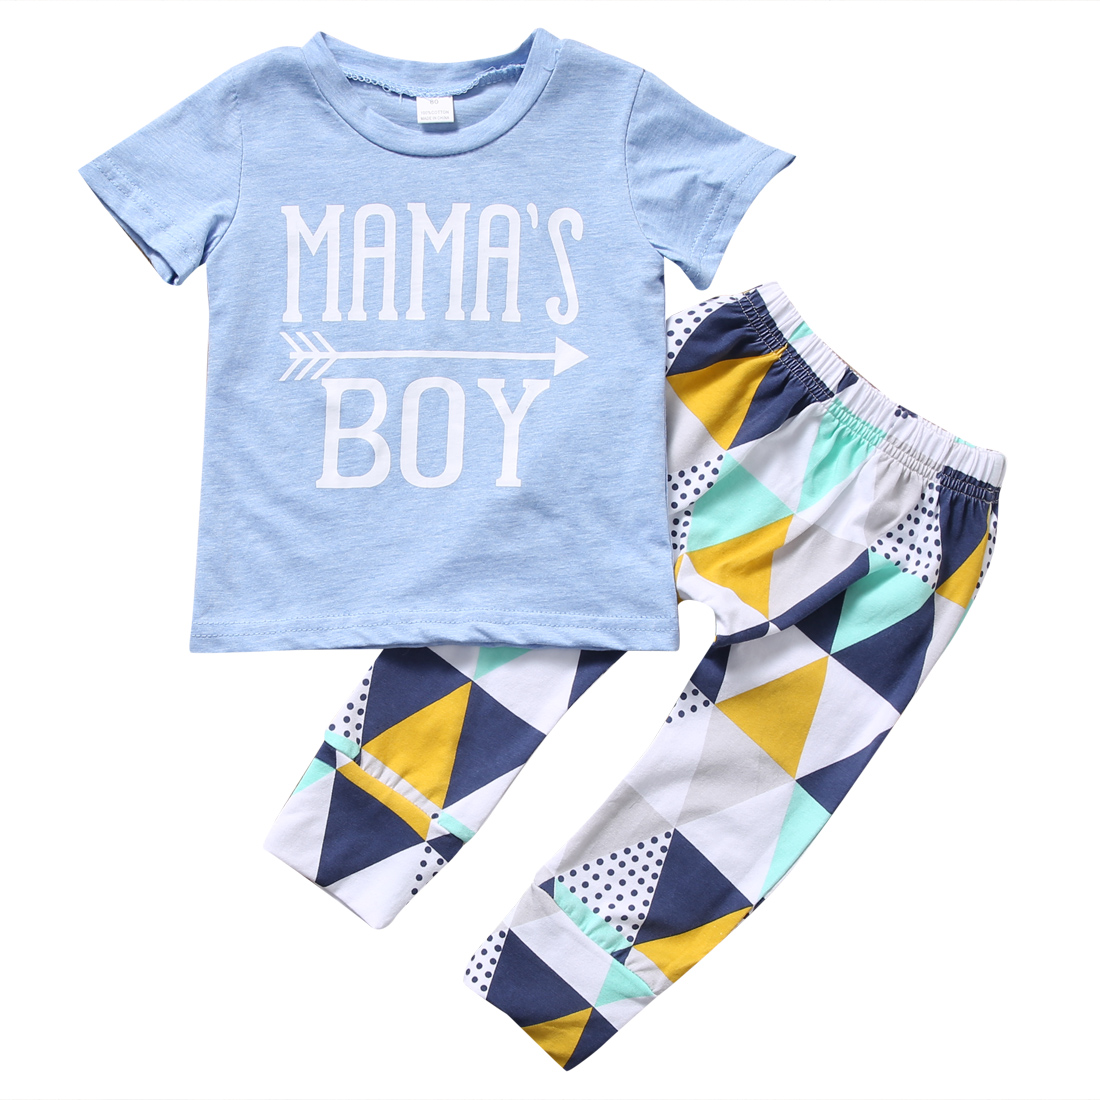 2017 Cute Newborn Baby Boy Clothes Summer Short Sleeve Mama's Boy Cotton T-shirt Tops Pant 2PCS Outfit Toddler Kids Clothing Set 2pcs newborn baby boys clothes set gold letter mamas boy outfit t shirt pants kids autumn long sleeve tops baby boy clothes set